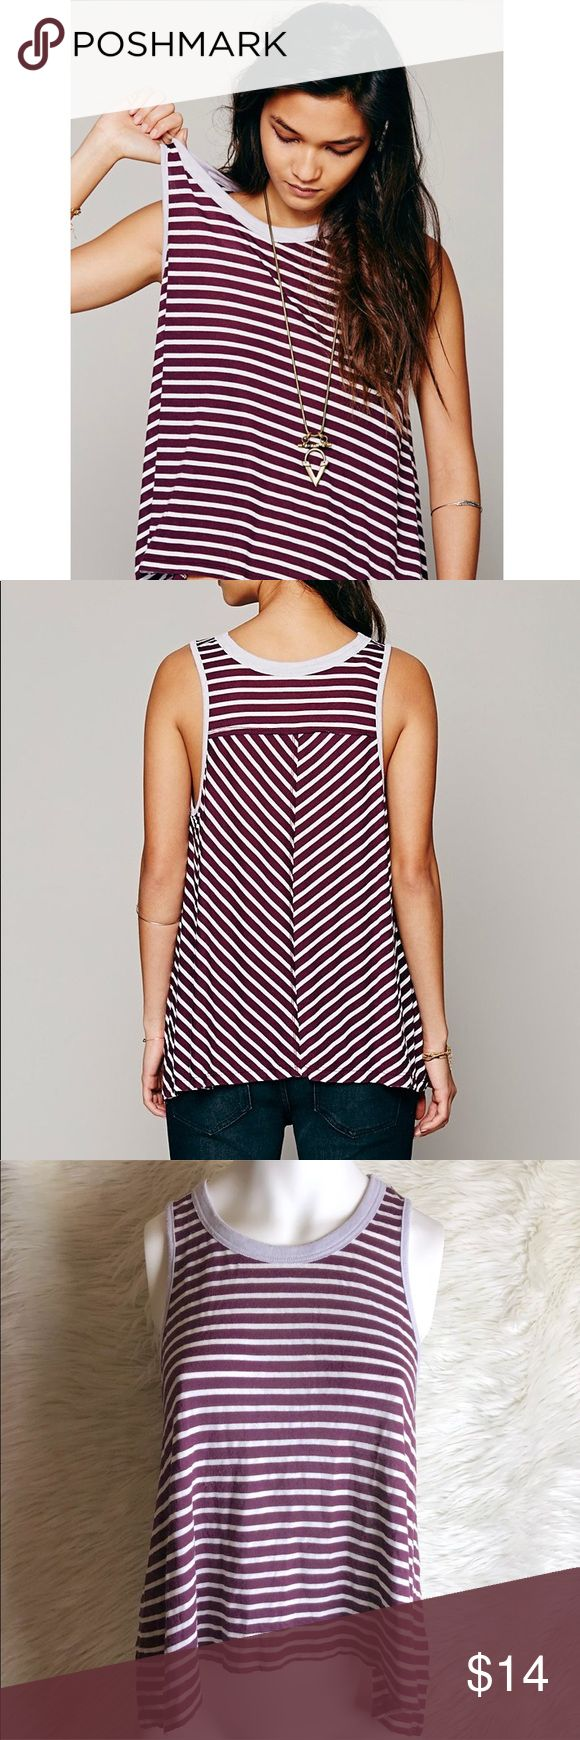 Free People We The Free Strike Out Tank Purple Free People We The Free Strike Out Tank in Purple, Pre Owned With No Flaws, Size Small, Length Front 18.5 Inches, Back 21 Inches, Armpit to Armpit 19.5 Inches Free People Tops Tank Tops